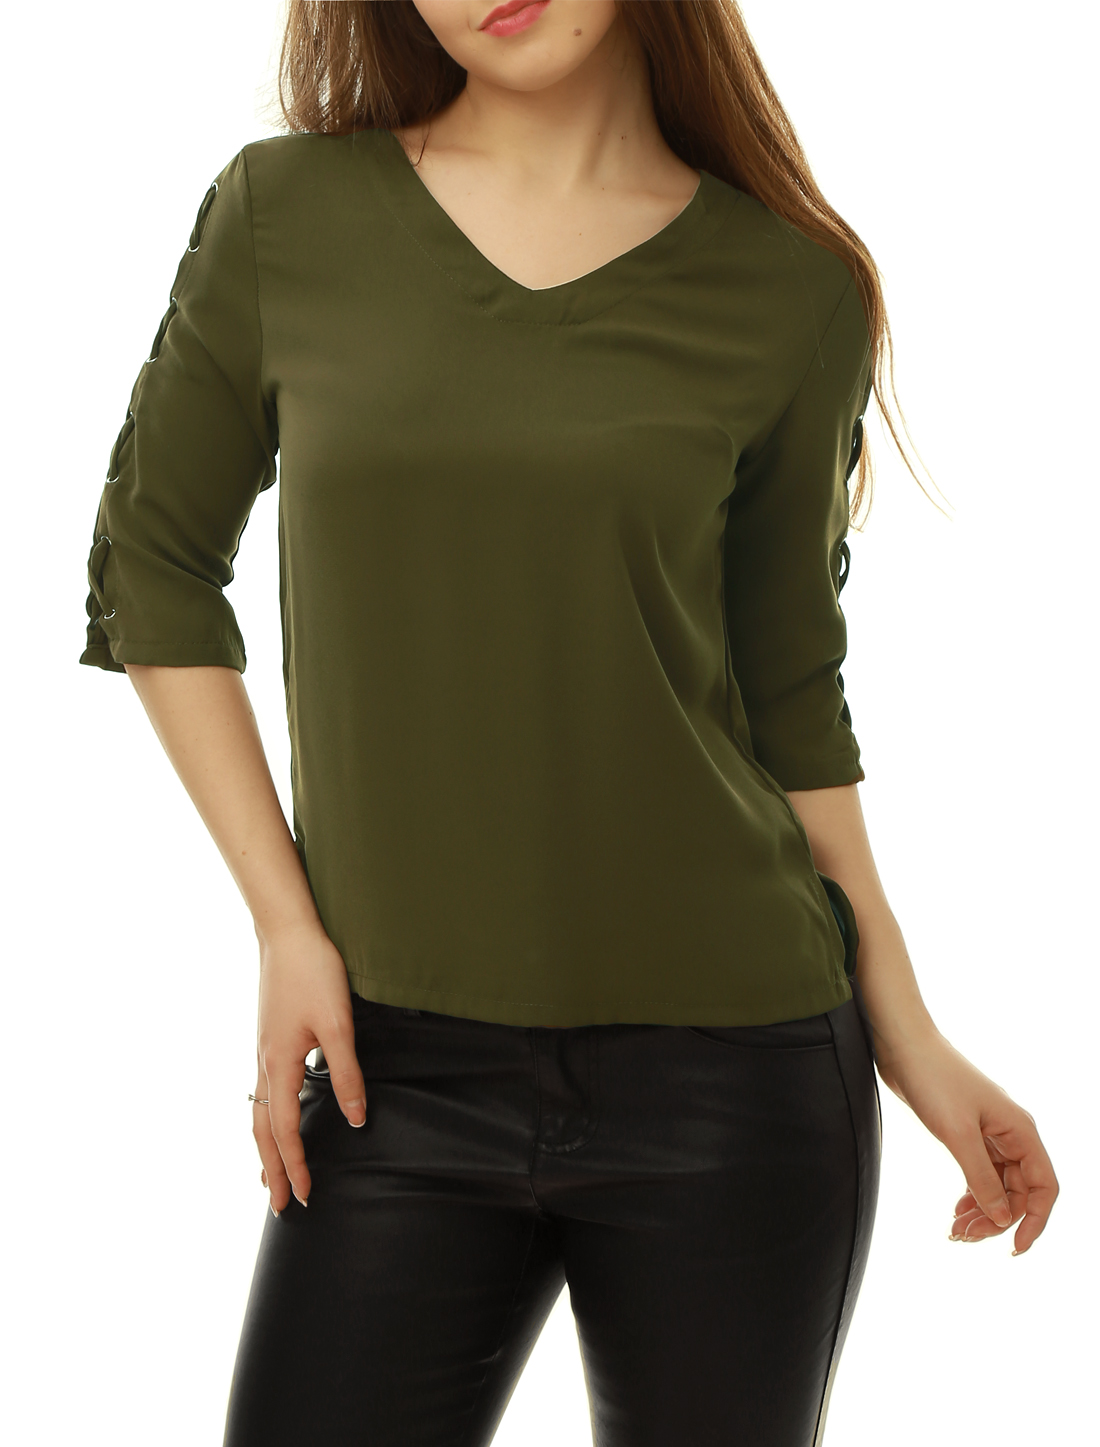 Women Three Quarter Lace Up Sleeves V Neck Side-Slit Top Green XL